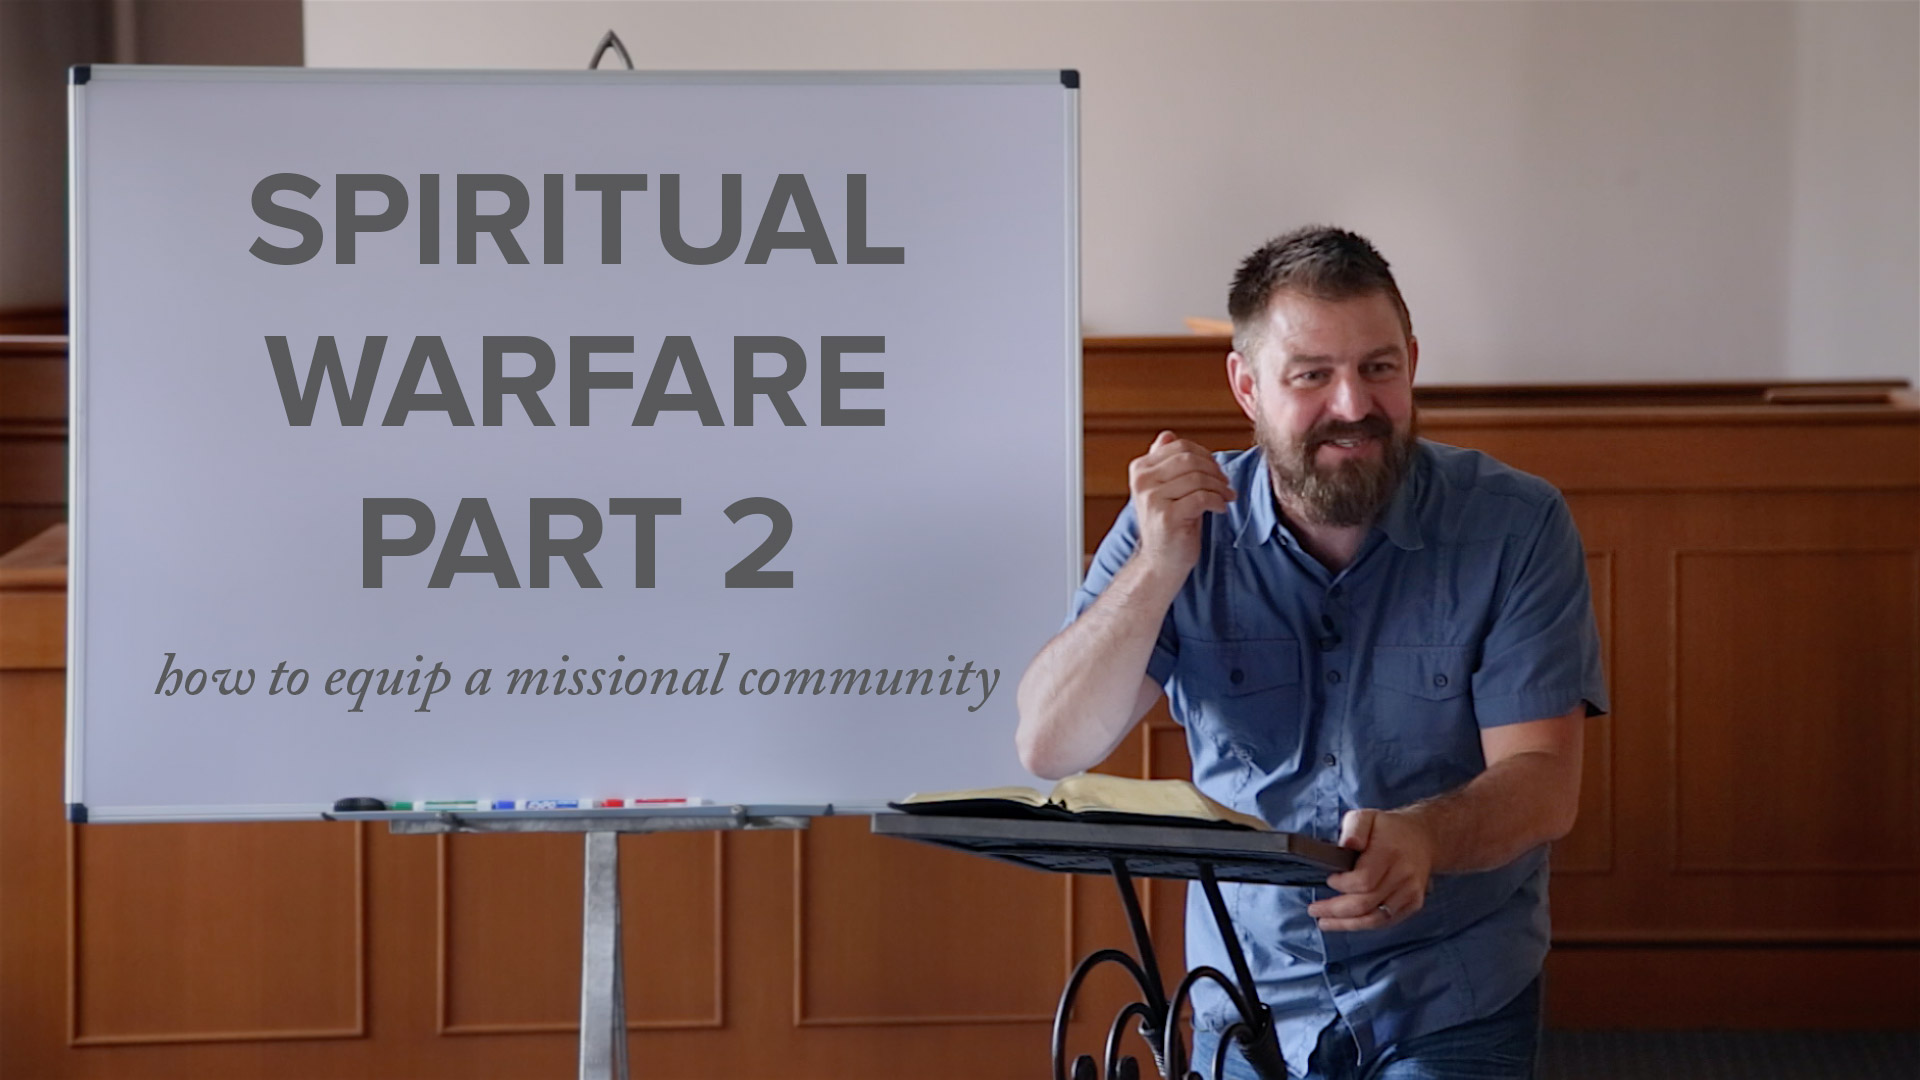 Spiritual Warfare, Part 2